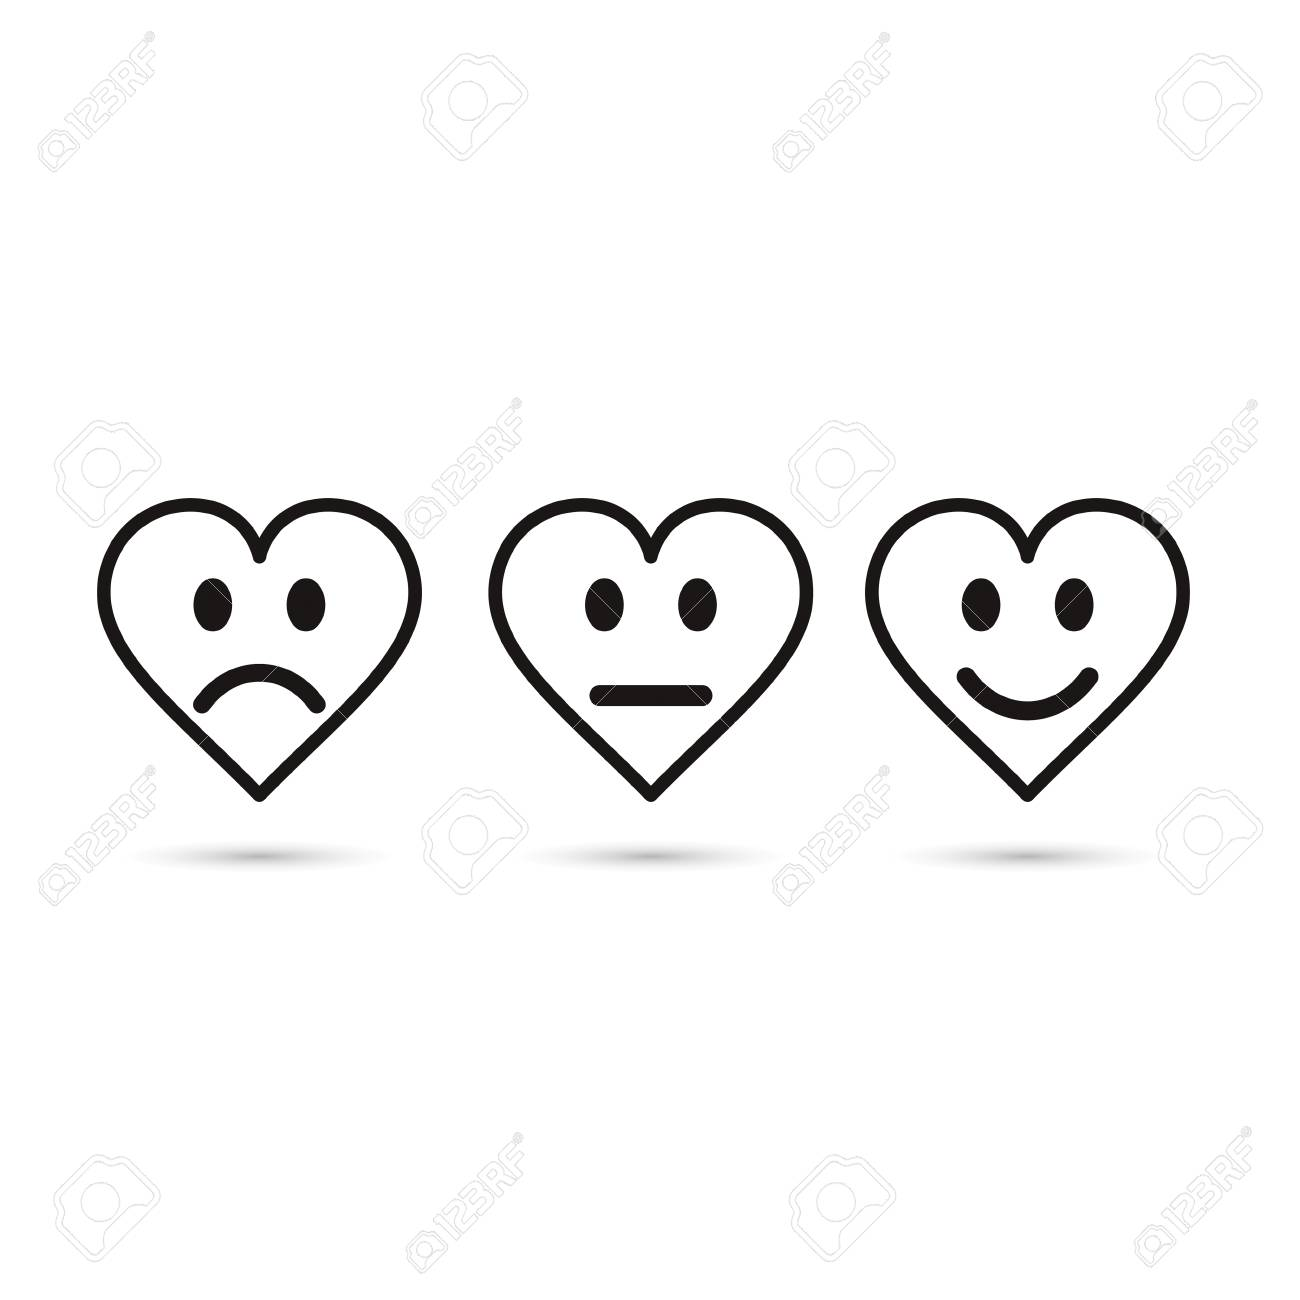 Heart Emoticon Evaluation Line Icon Feedback Symbol Heart With